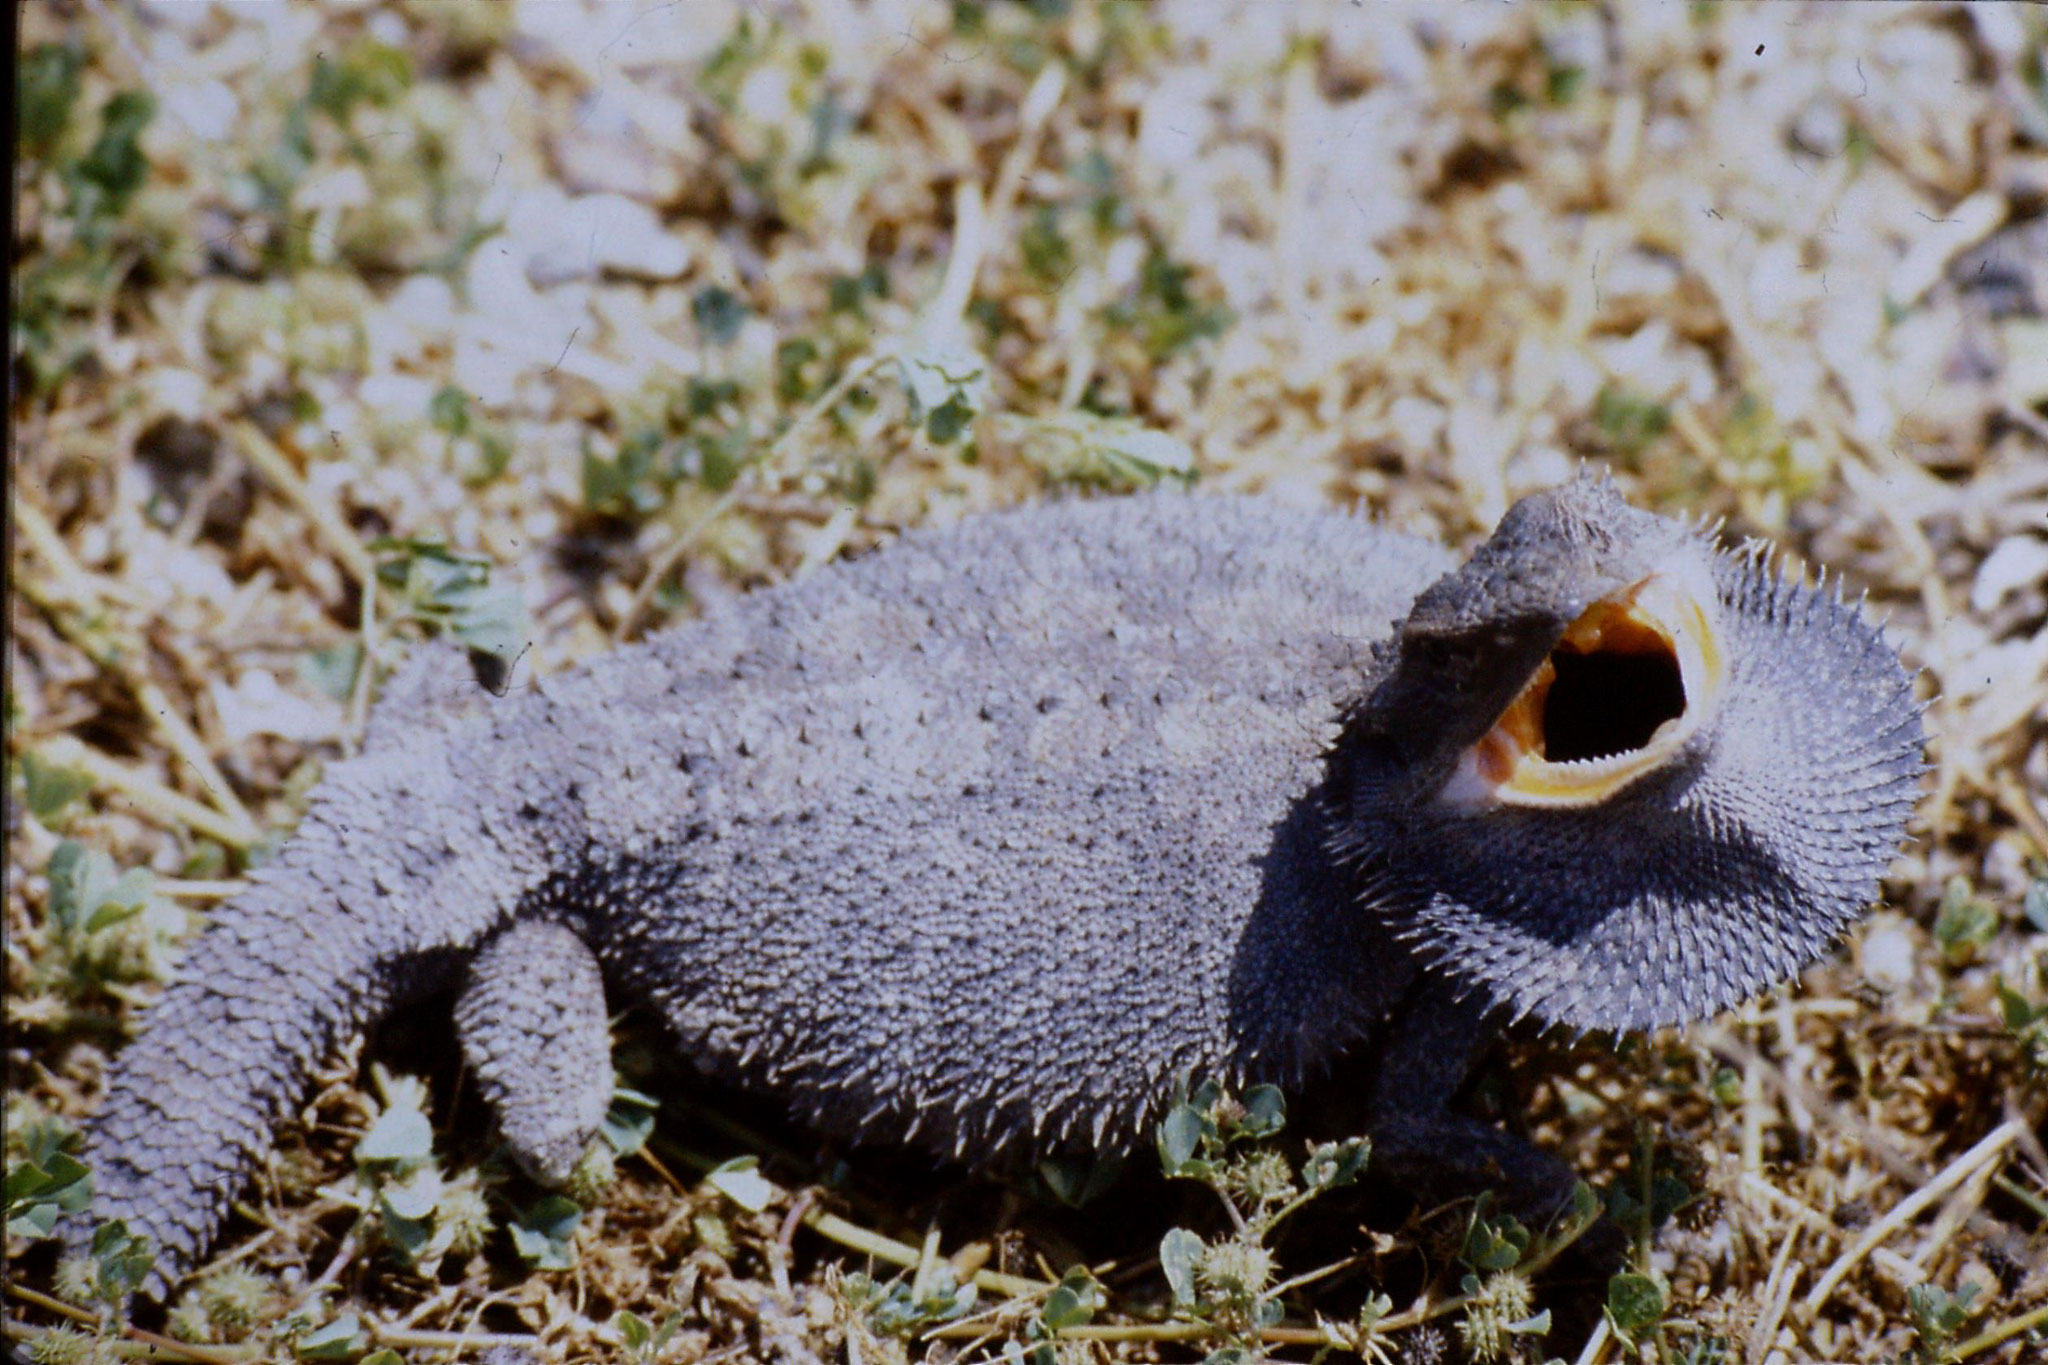 10/10/1990: 32: on road for Lightning Ridge, frilled lizard on road